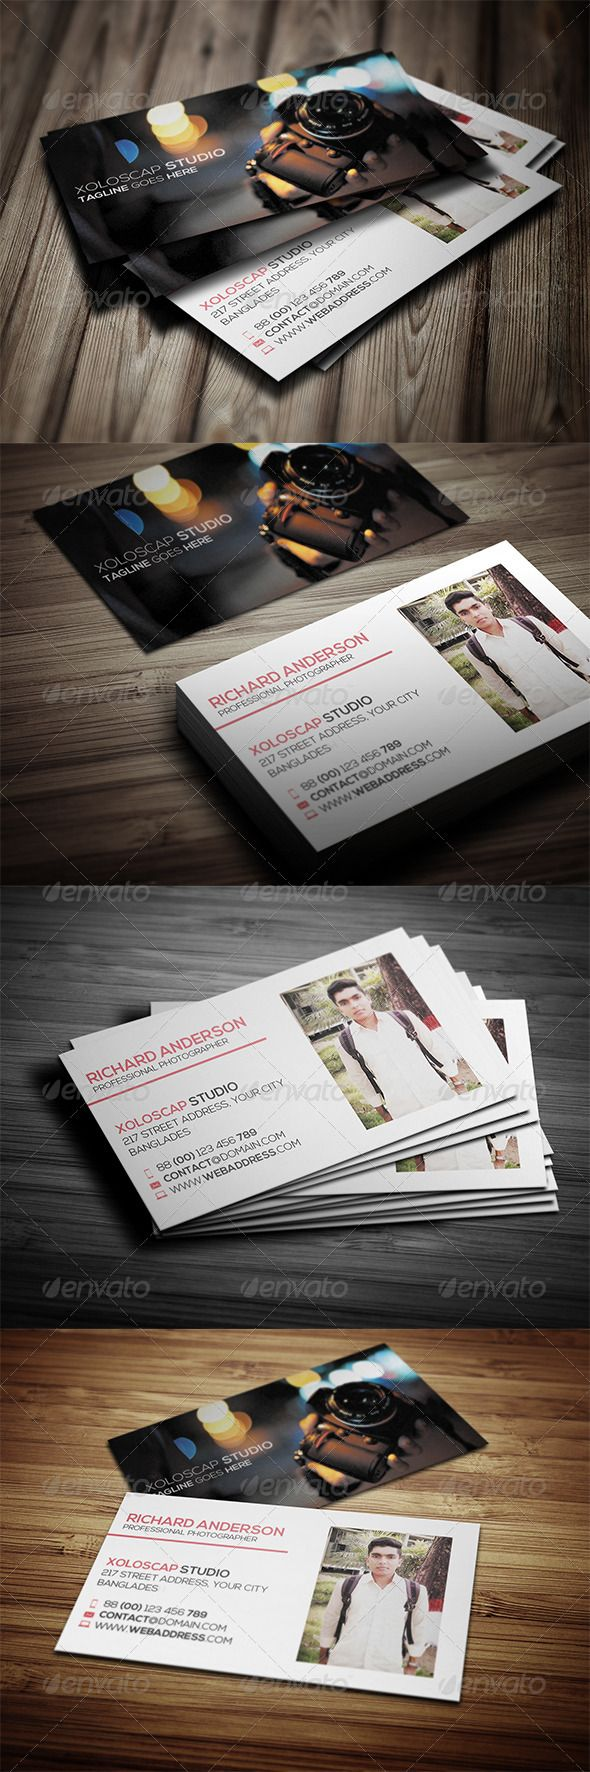 13 best top business logos images on pinterest business cards created in adobe photoshop cs4 easy to edit and customize layers are well organized reheart Image collections